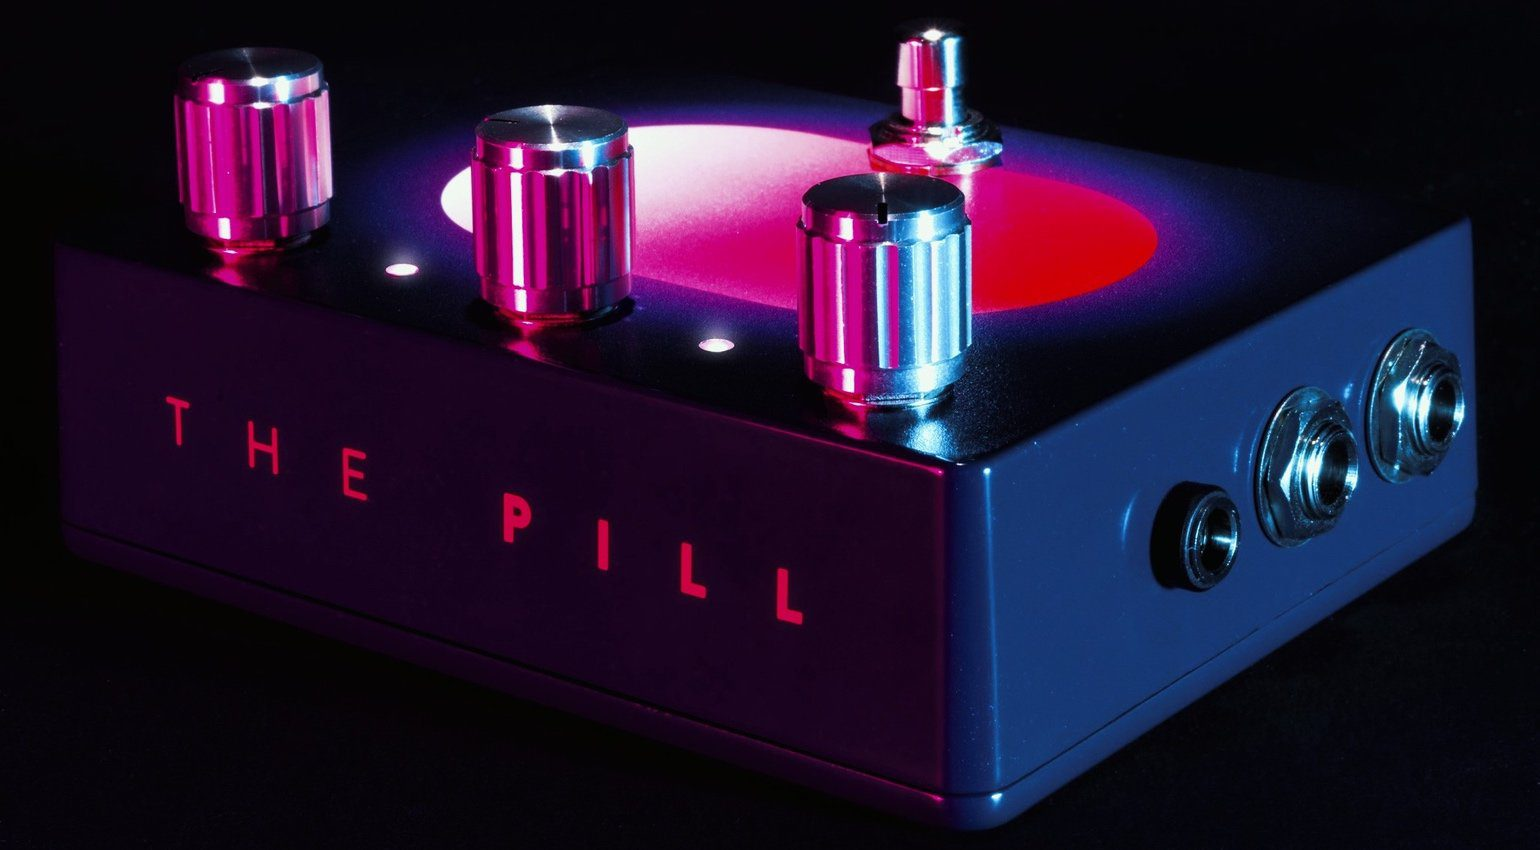 Weltweit Erstes Analoges Ducking Pedal The Pill Gearnewsde